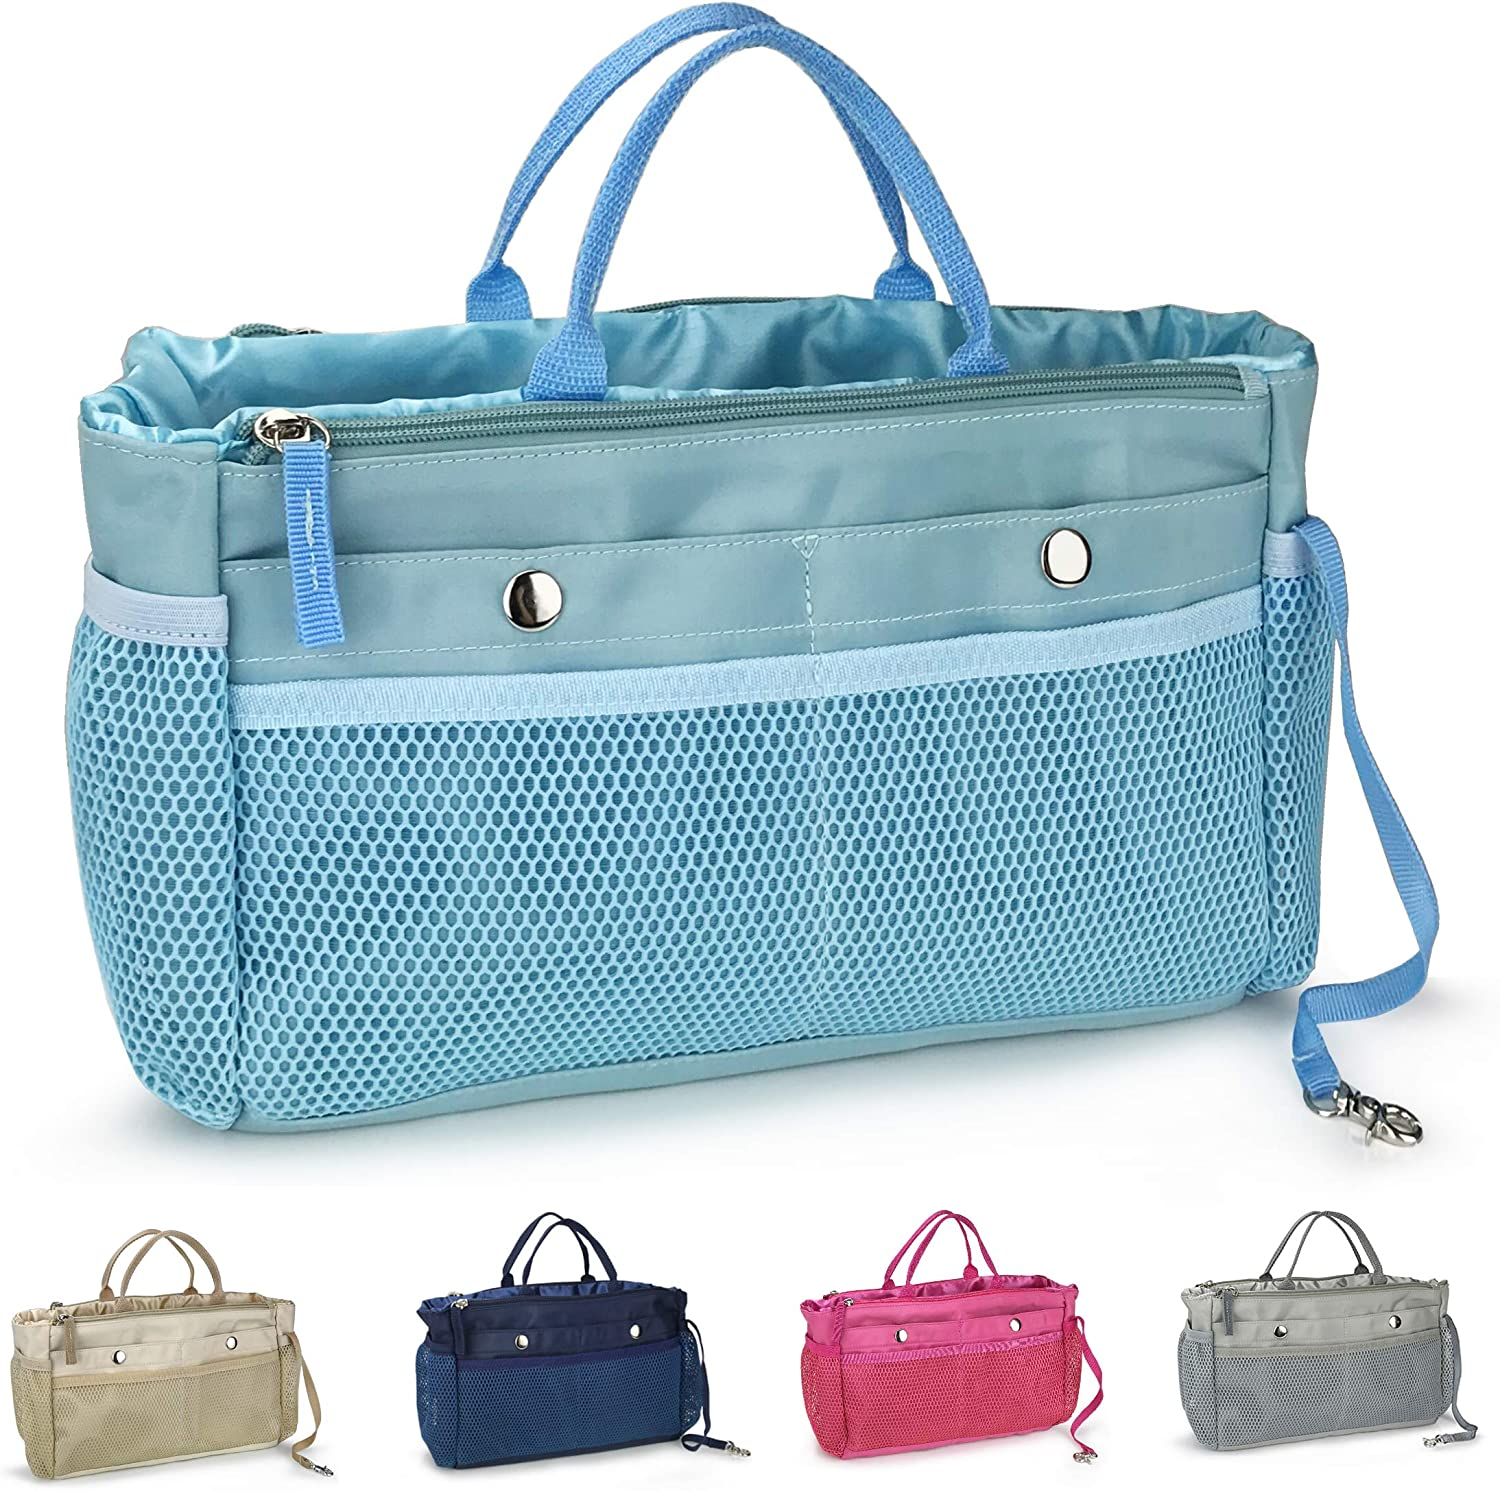 Handbag Organizer Insert 15 Pockets Purse Tote Insert with Convertible Drawstring Pouch (Blue)